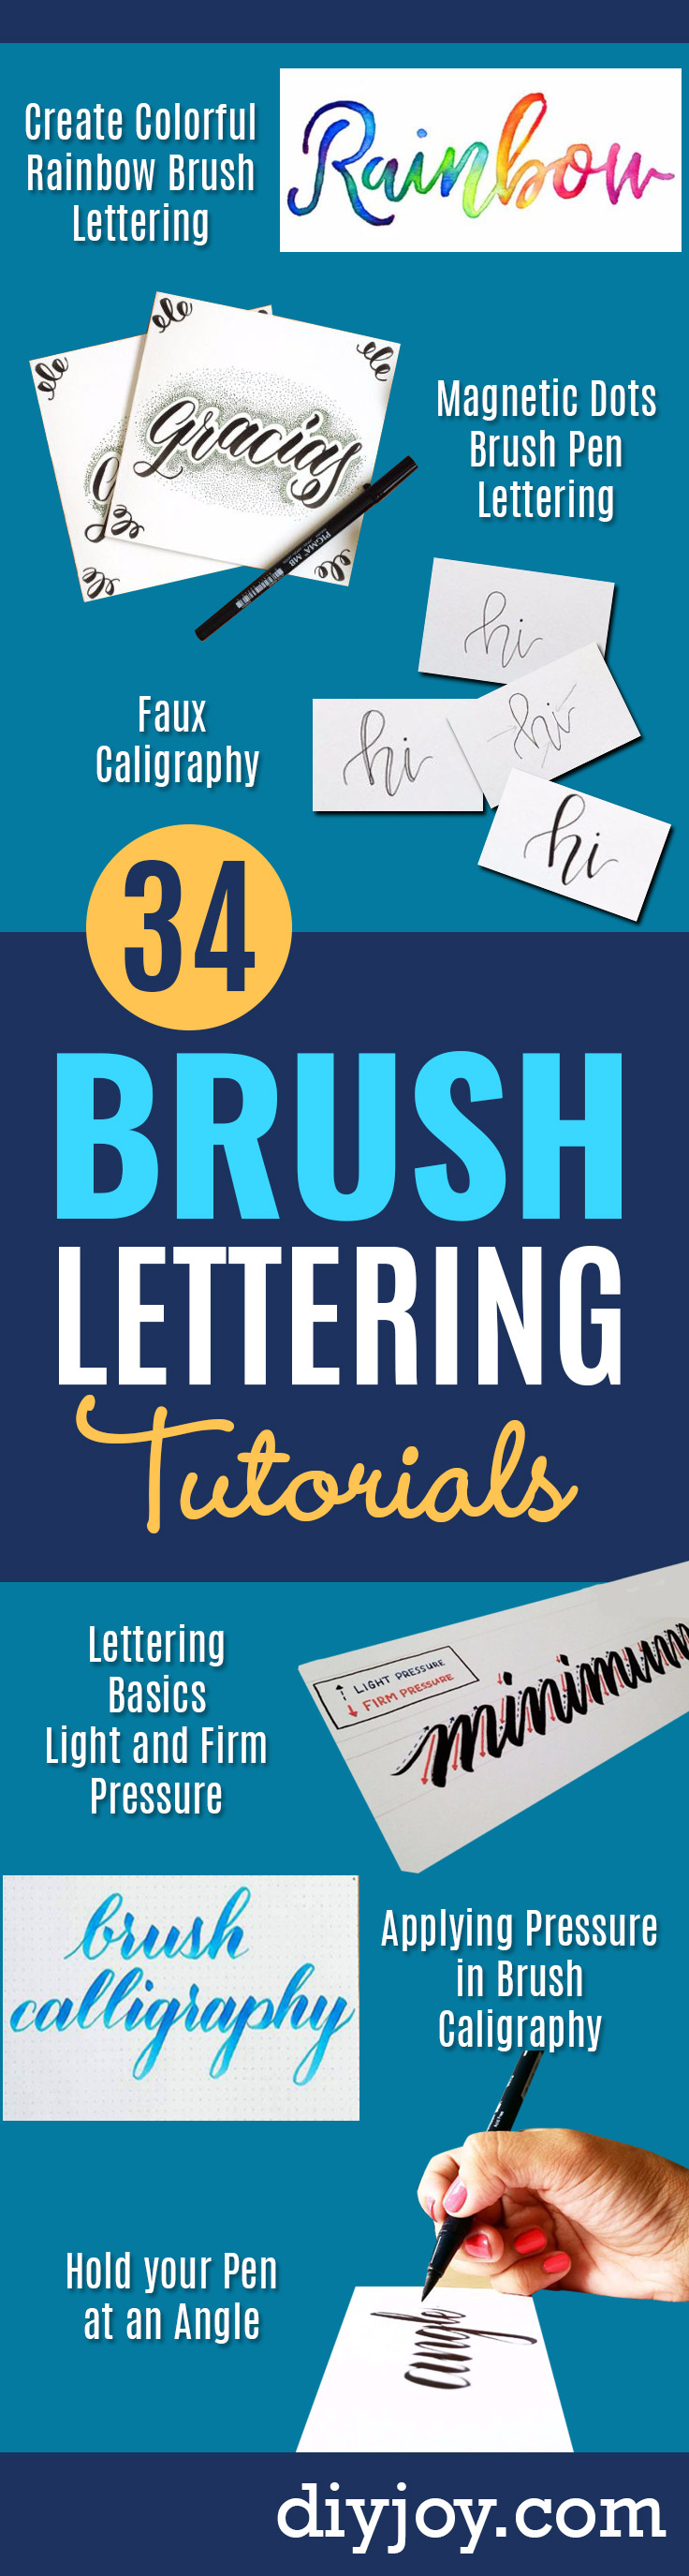 Brush Lettering Tutorials - Simple and Fun Calligraphy Tutorial Videos - How To Paint the Alphabet in Calligraphy Handwriting with Pens, Watercolors, Adobe Illustrator and Sharpie - Typography Tips and Help http://diyjoy.com/brush-lettering-tutorials